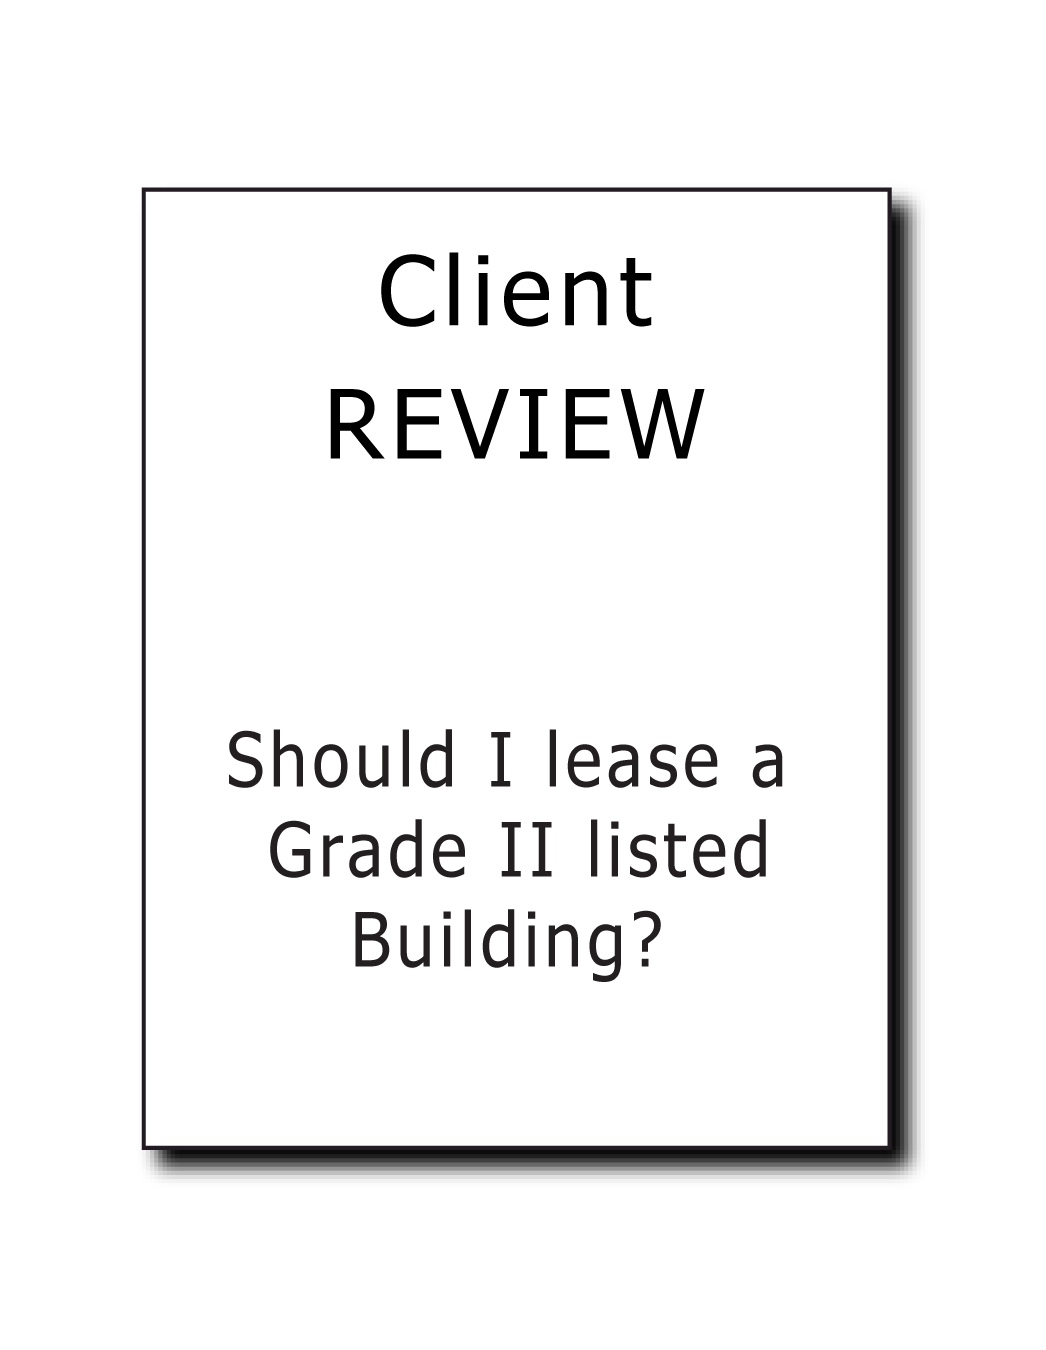 Article - Should I Lease a Grade II Listed Building?